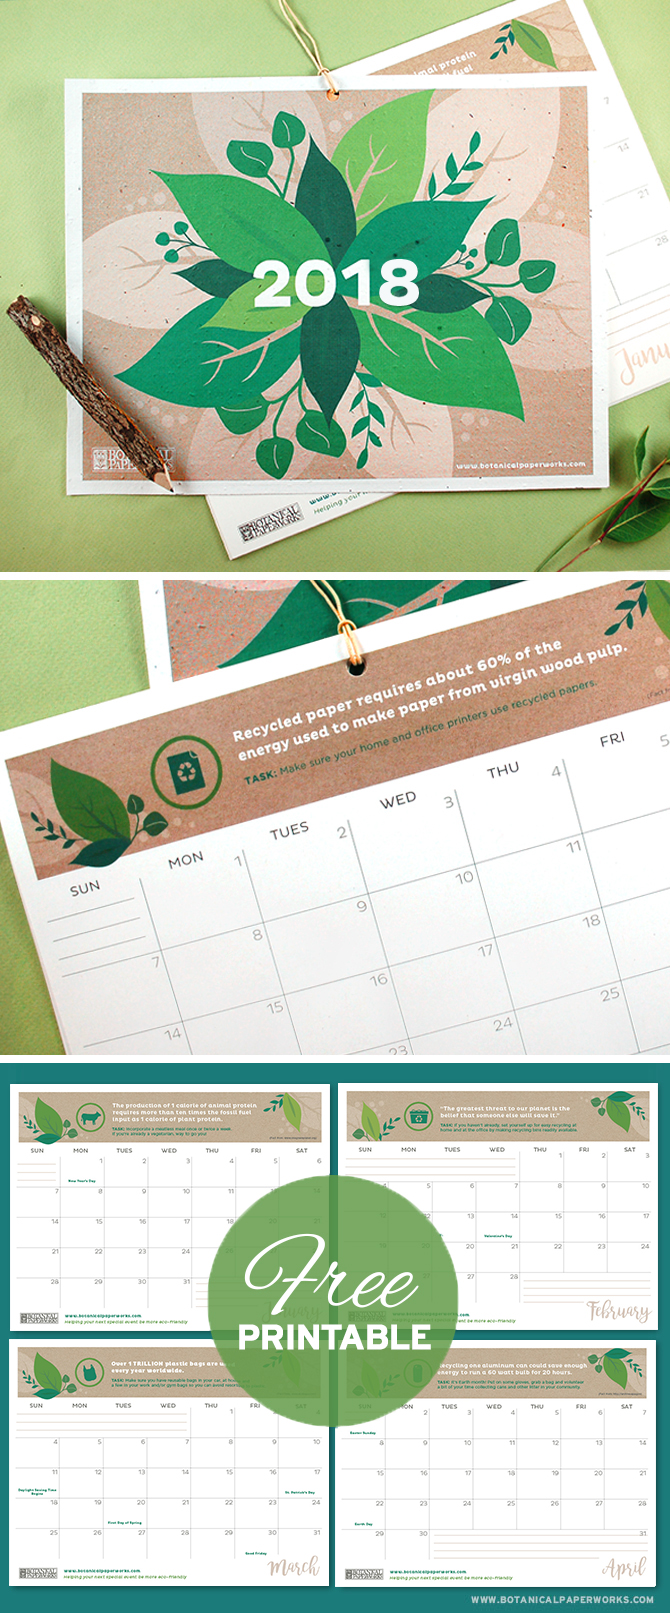 With facts, quotes and tips to help you live a more eco-friendly life, this vibrant Free Printable 2018 Eco Tips Calendar is perfect for those who want to plan a greener future. Simply download and print the PDF at home!